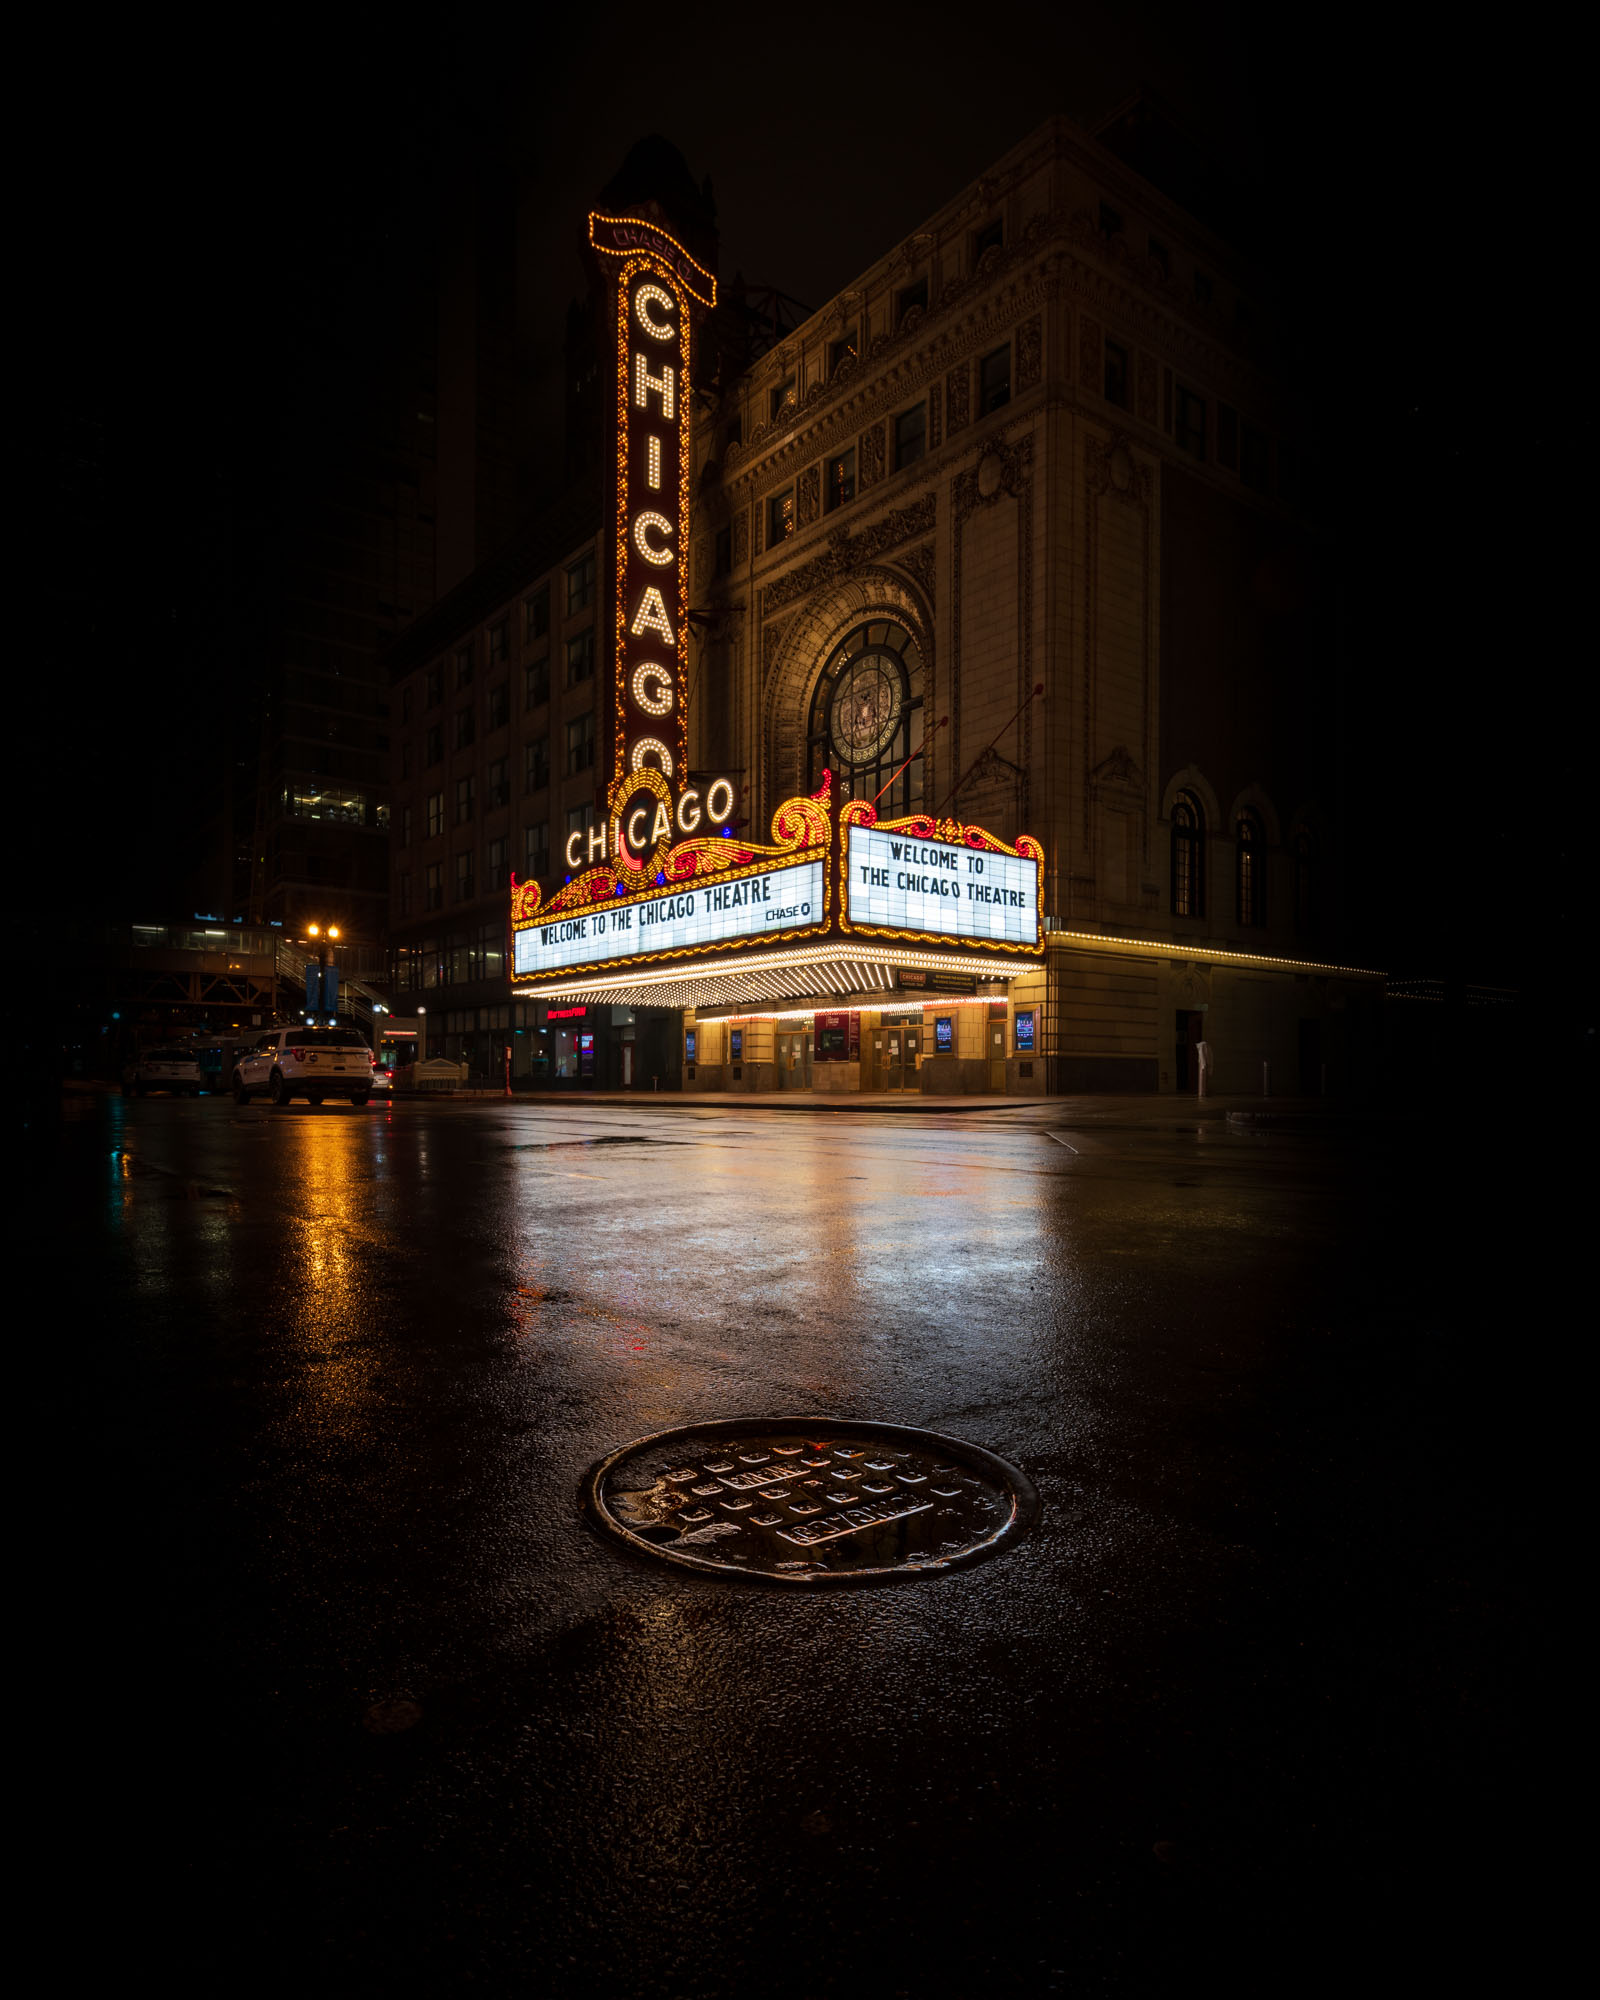 The Chicago Theatre sign